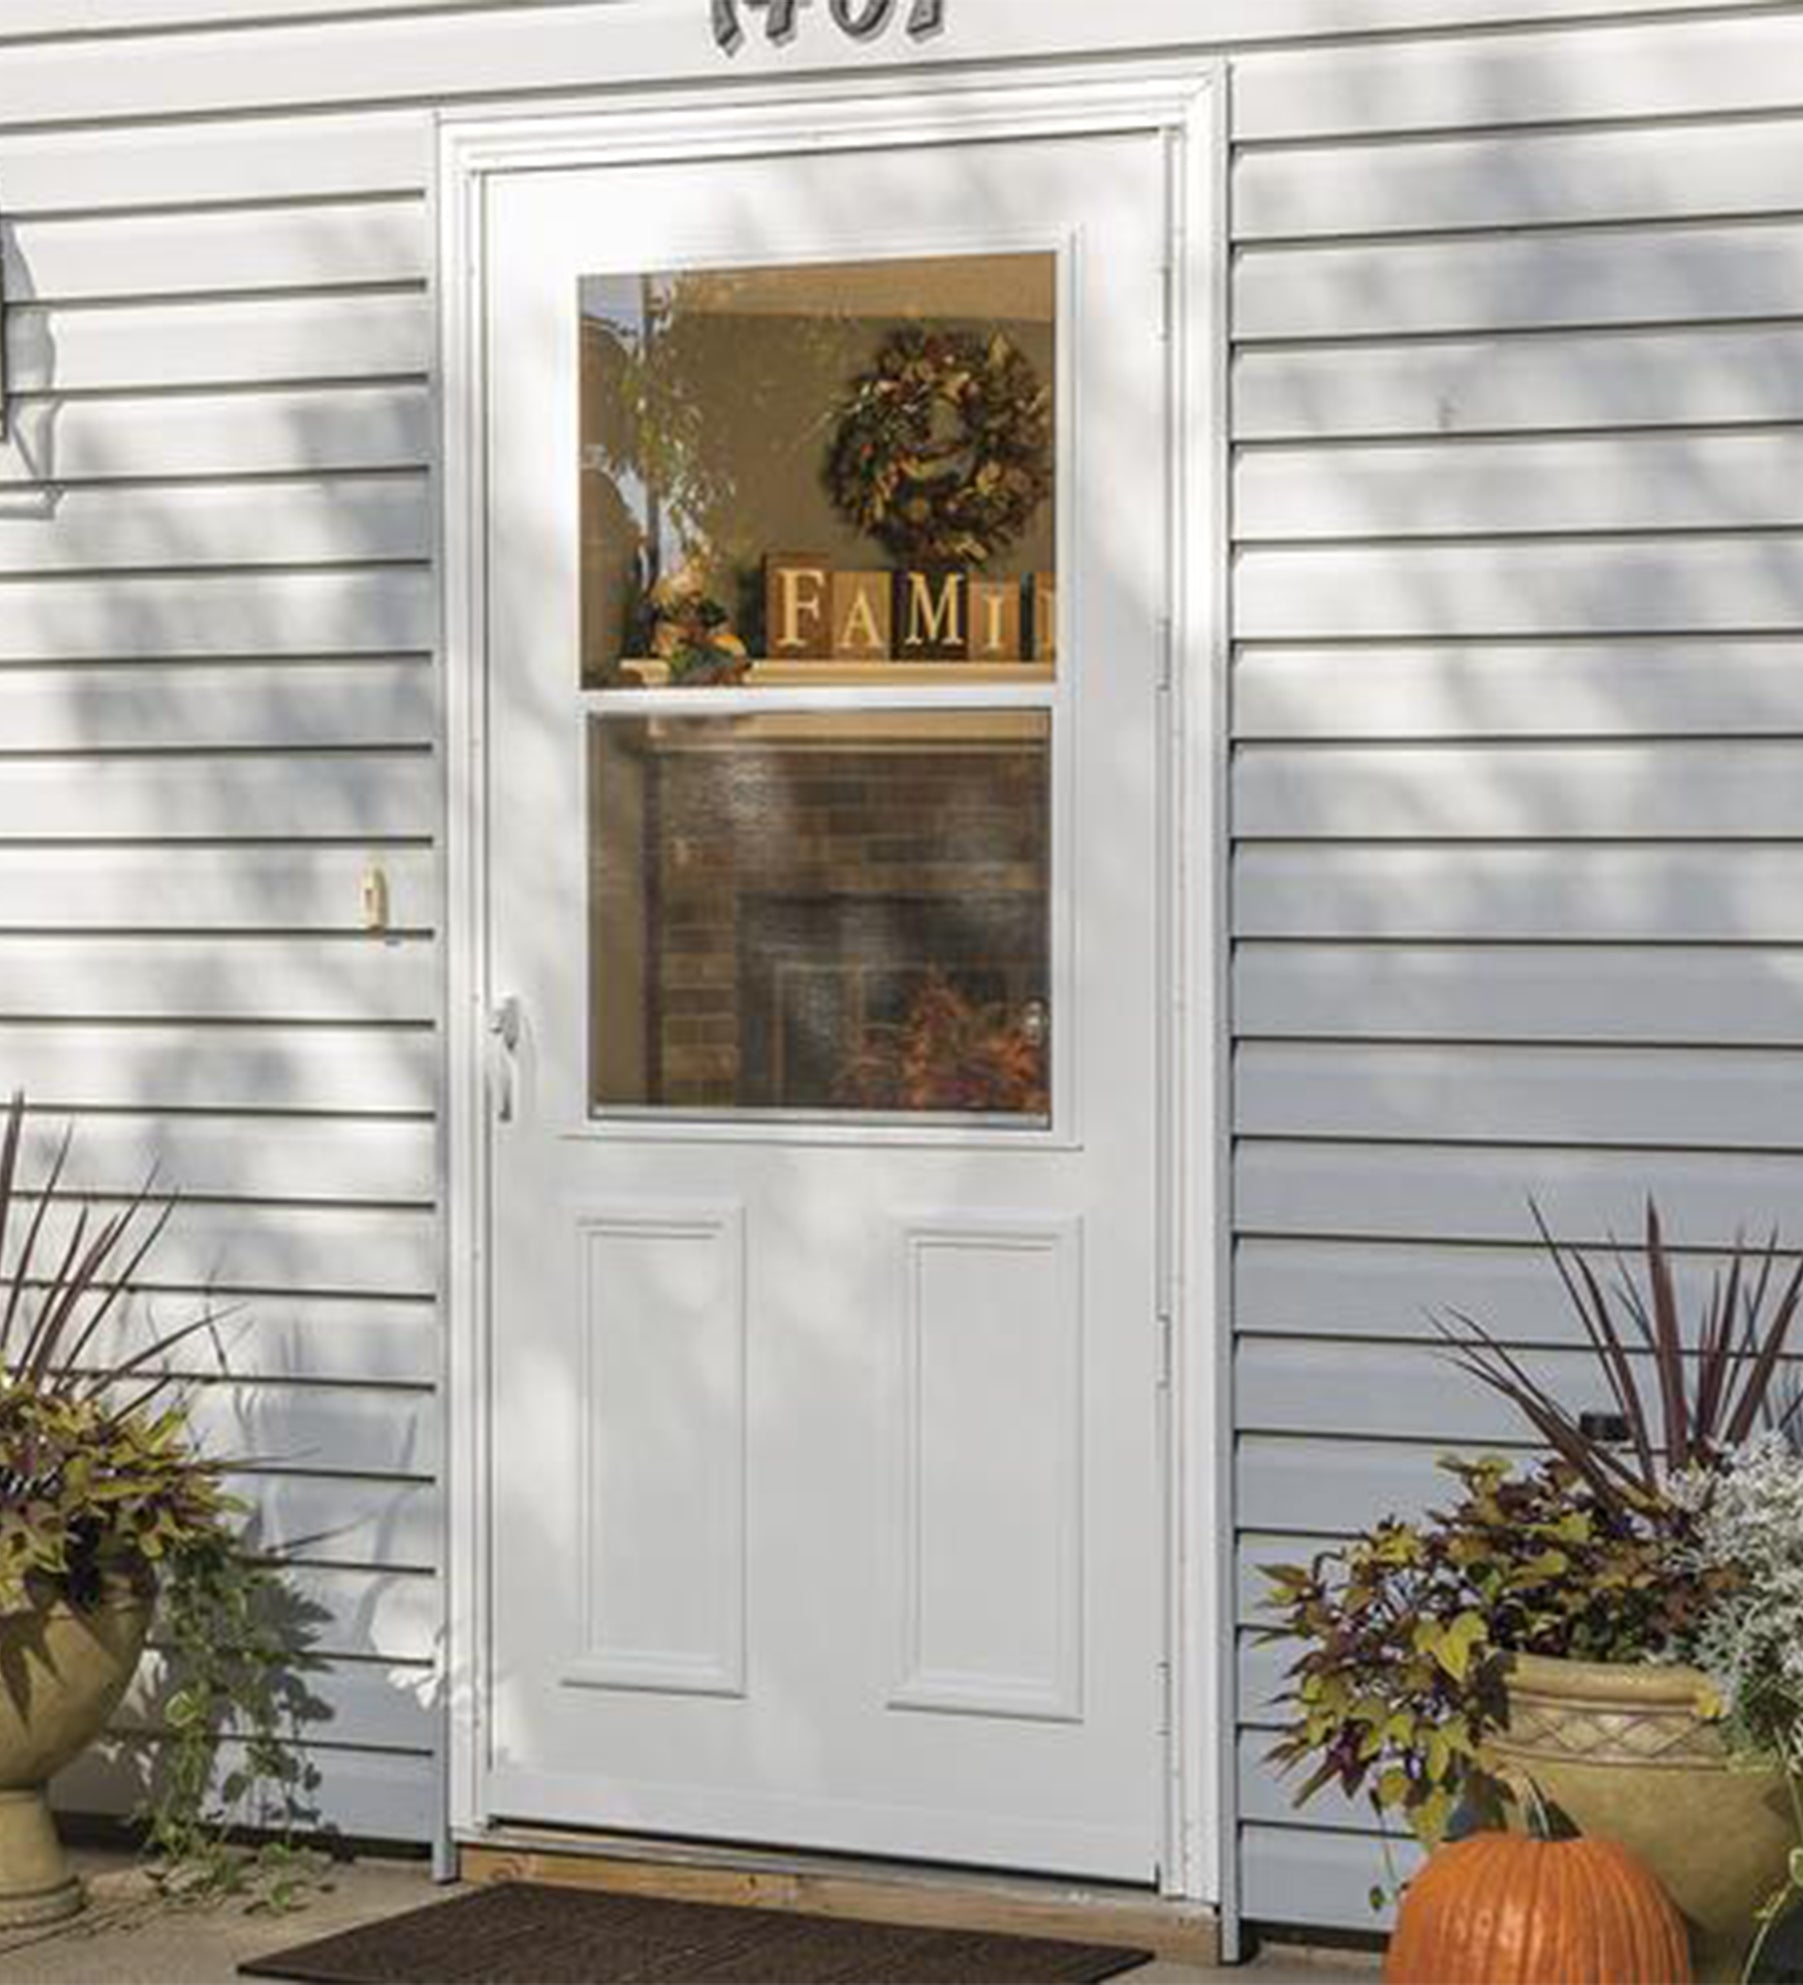 INSTALLED Larson Life Style High-View Storm Door w/ Hardware STARTING $545.99